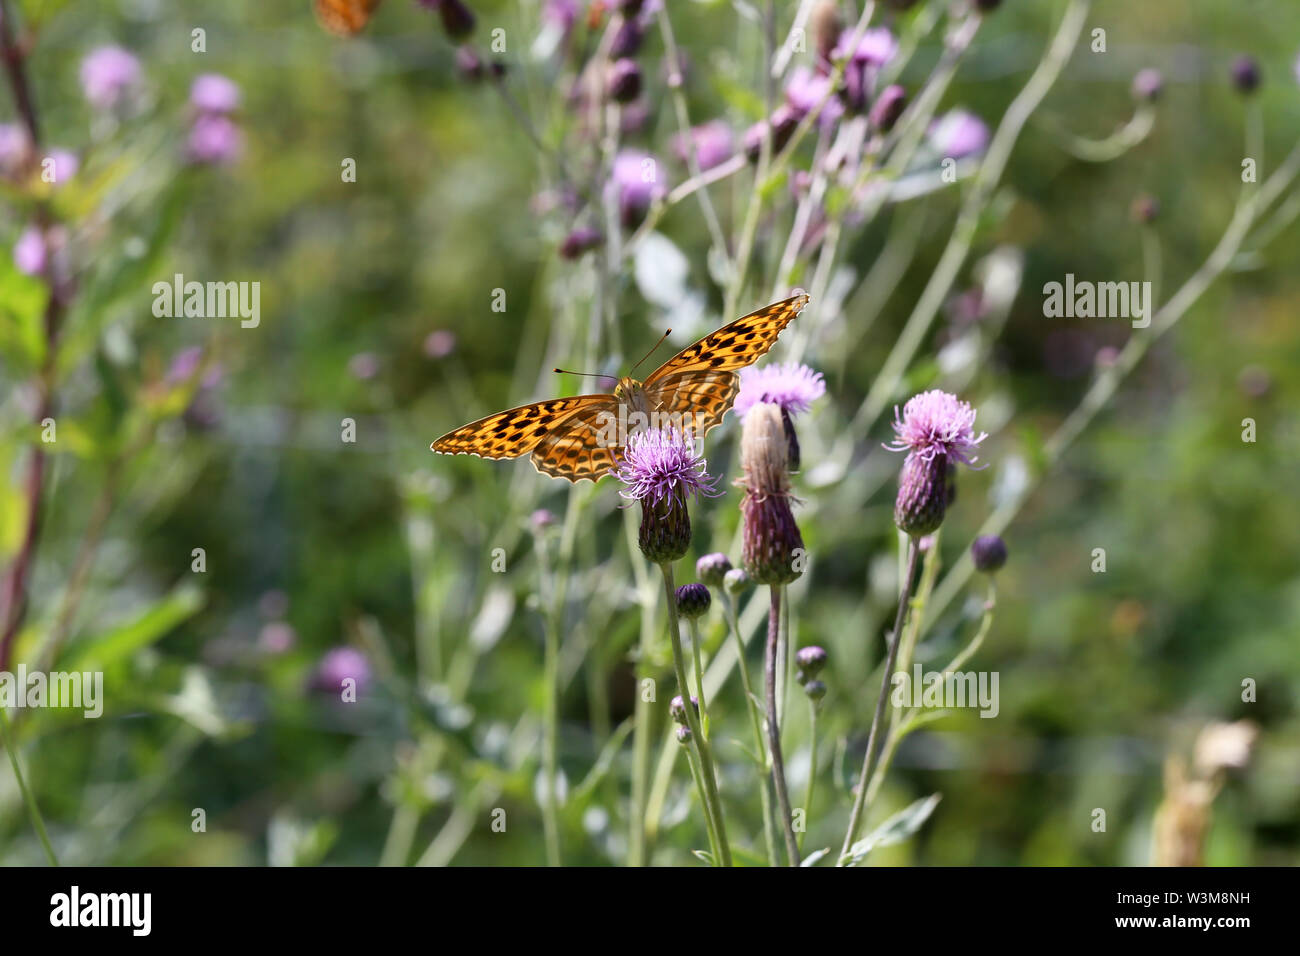 Beautiful butterfly drinks nectar from a flower. - Stock Image